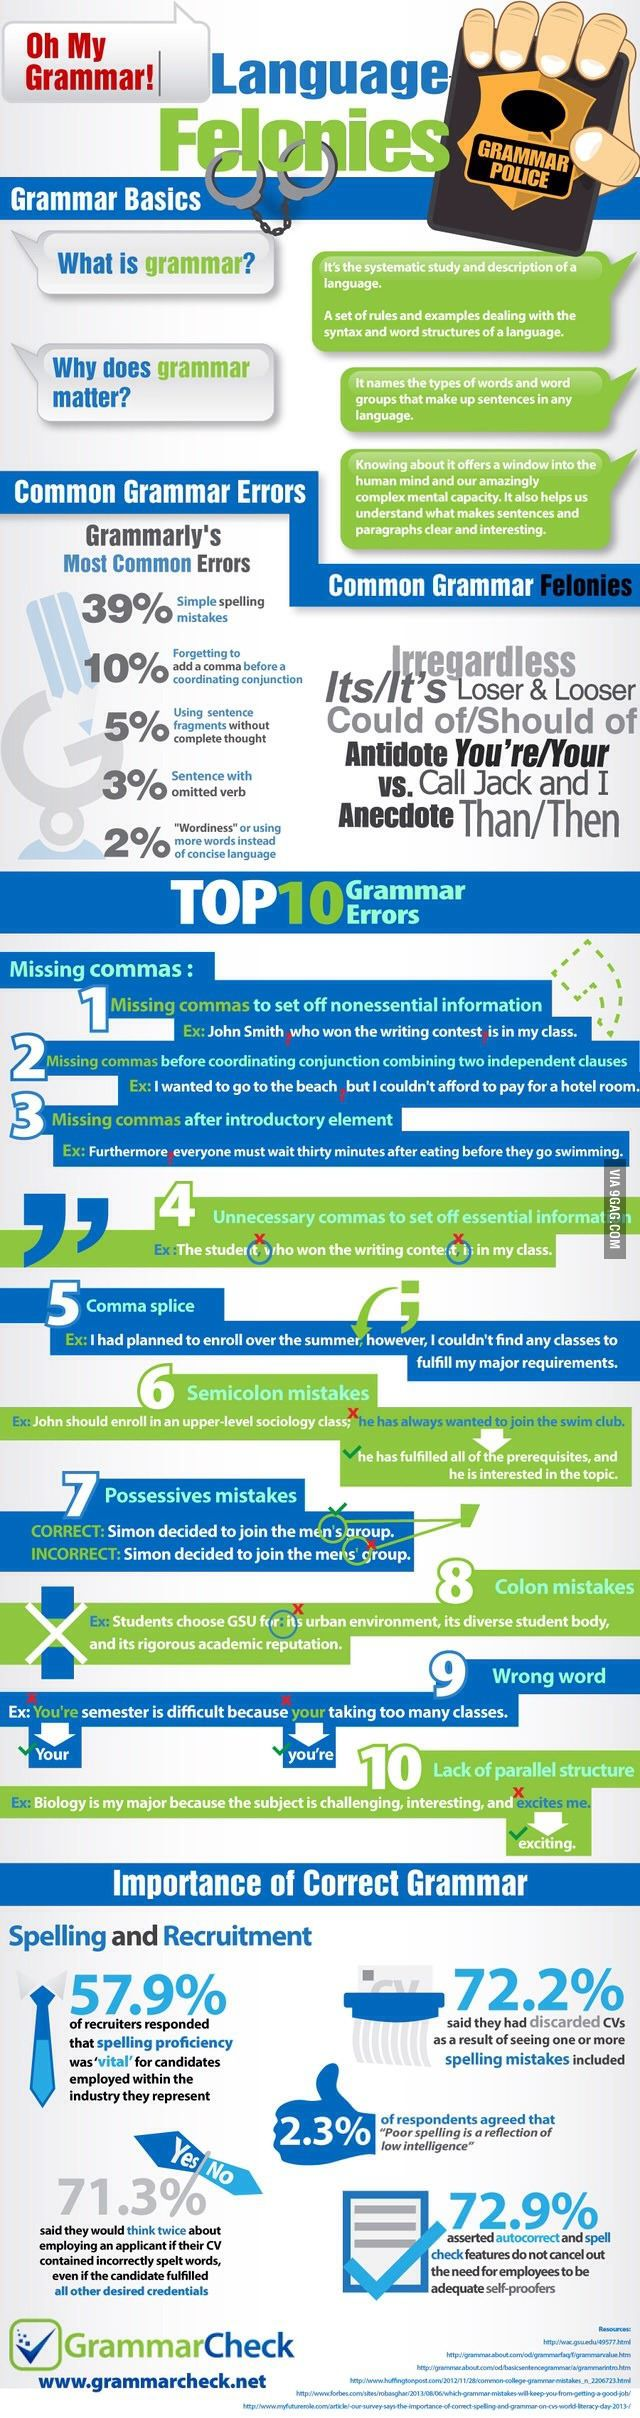 Most common grammar mistakes.